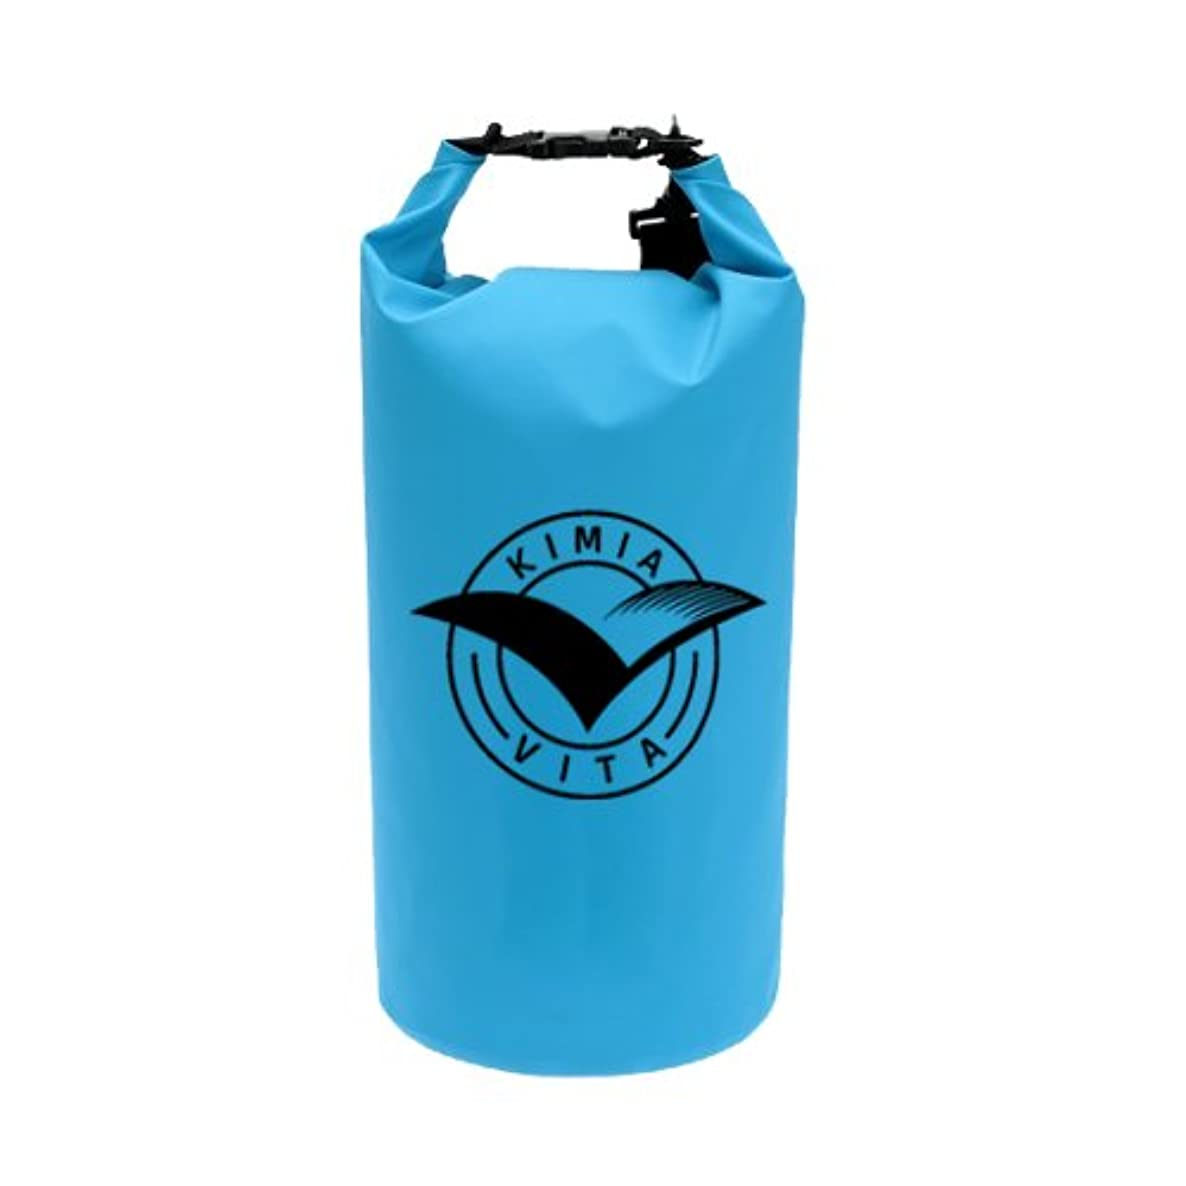 Kimia Vita Waterproof 10L Dry Bag - Perfect for Holding: Phone - Camera - Valuables - Great for Any Water Excursion: Boating - Kayaking - Paddleboarding - Beach eywwgkujewcabzyv